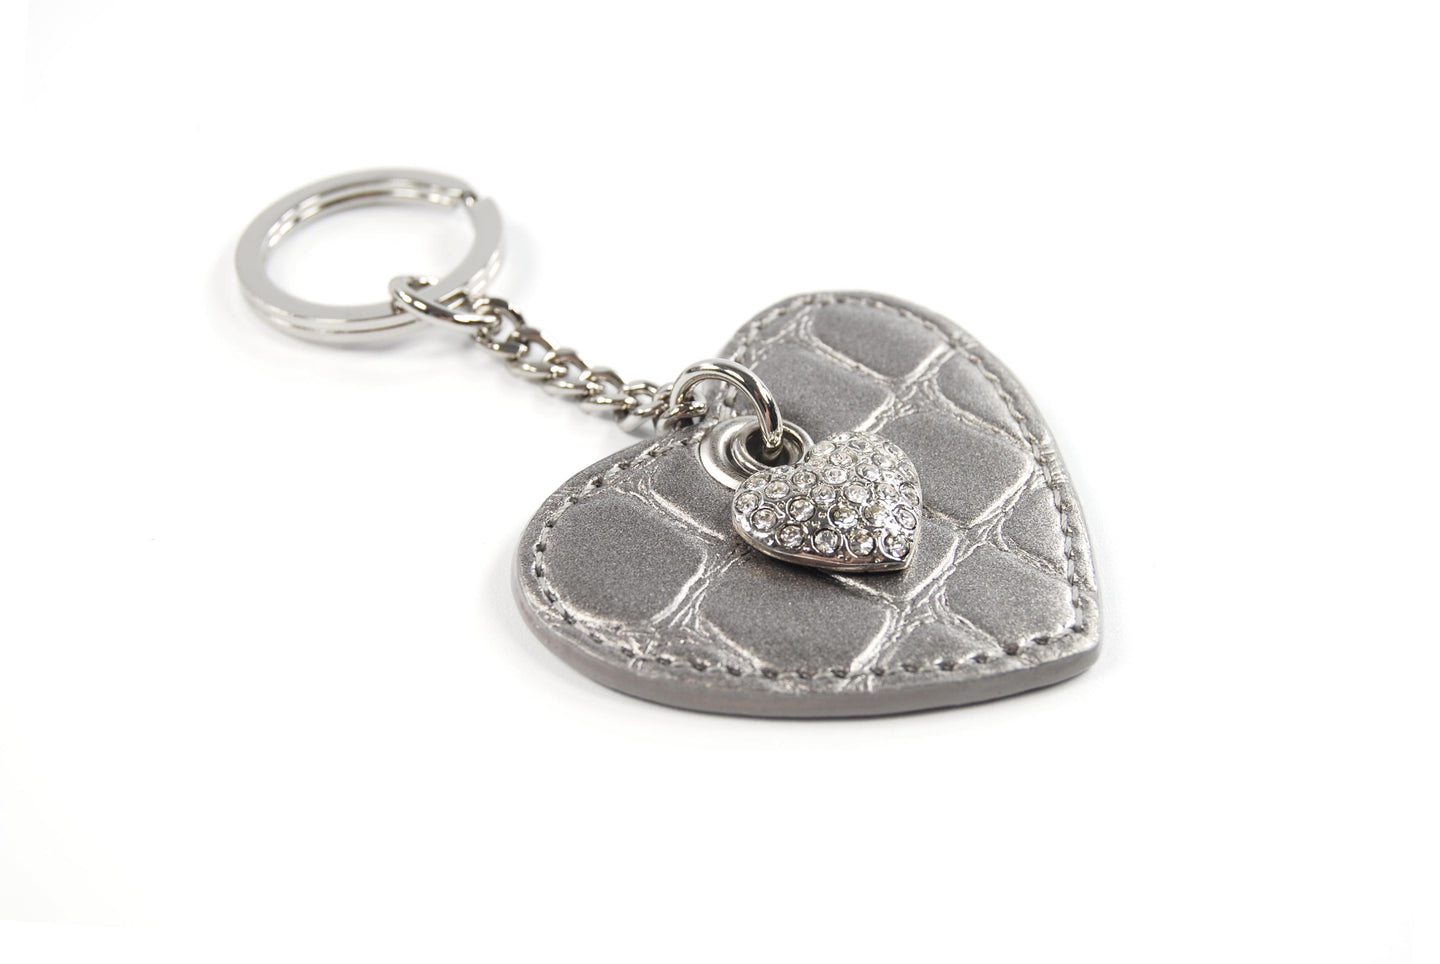 Heart Keychain - Heart shaped keychain with bling